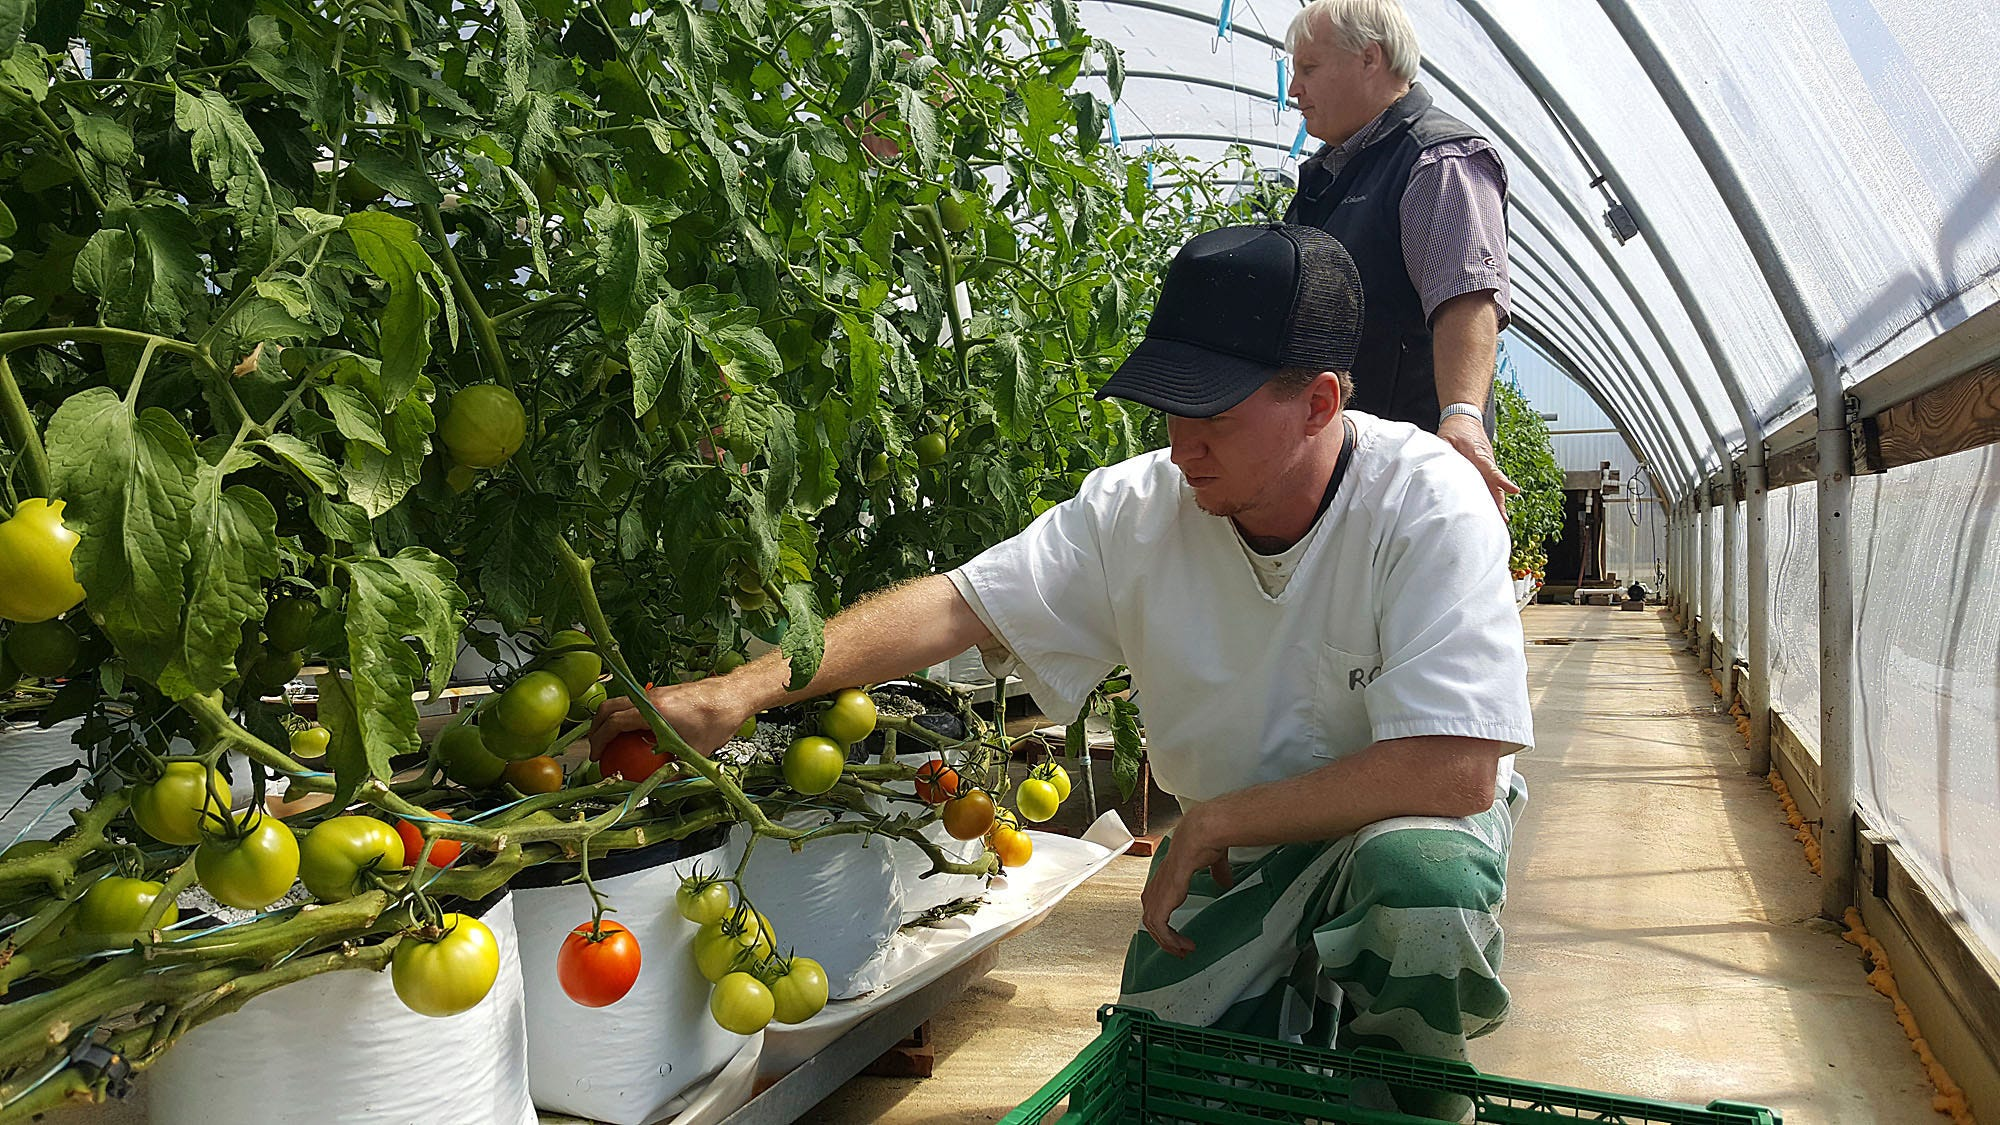 Mississippi inmates harvesting 300 pounds of tomatoes a week   Clarion Ledger